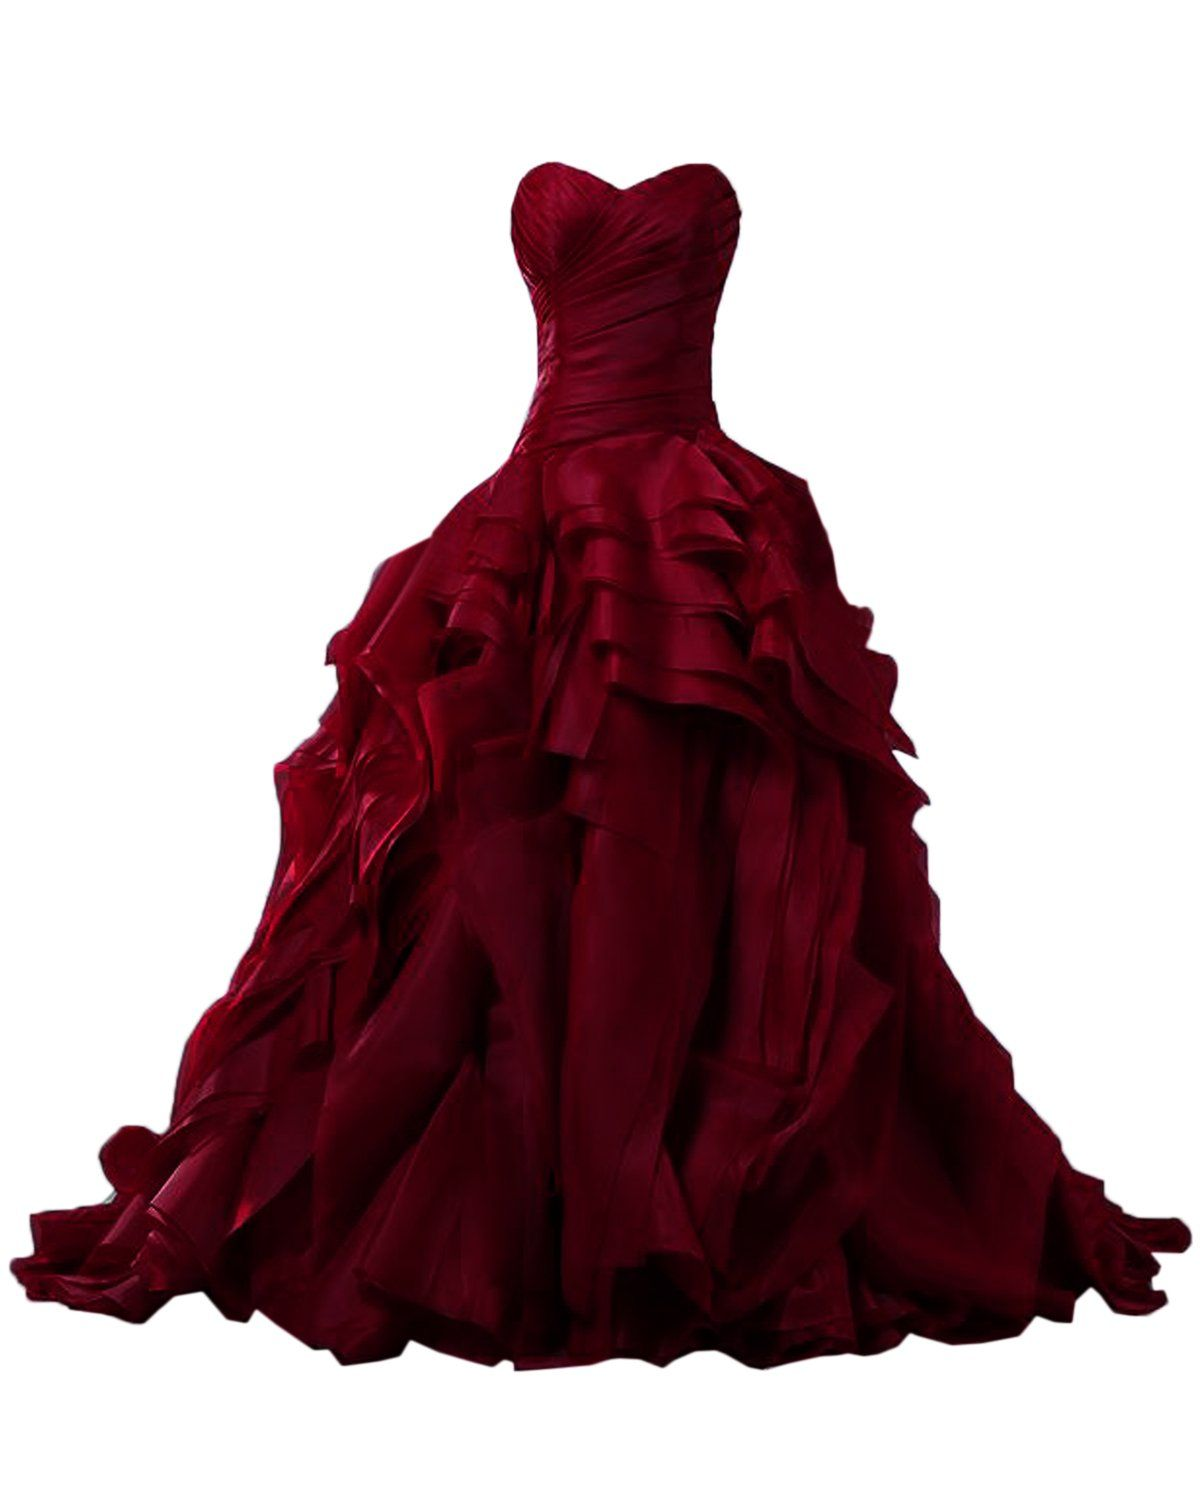 Ball Gown Silhouette at GetDrawings.com | Free for personal use Ball ...